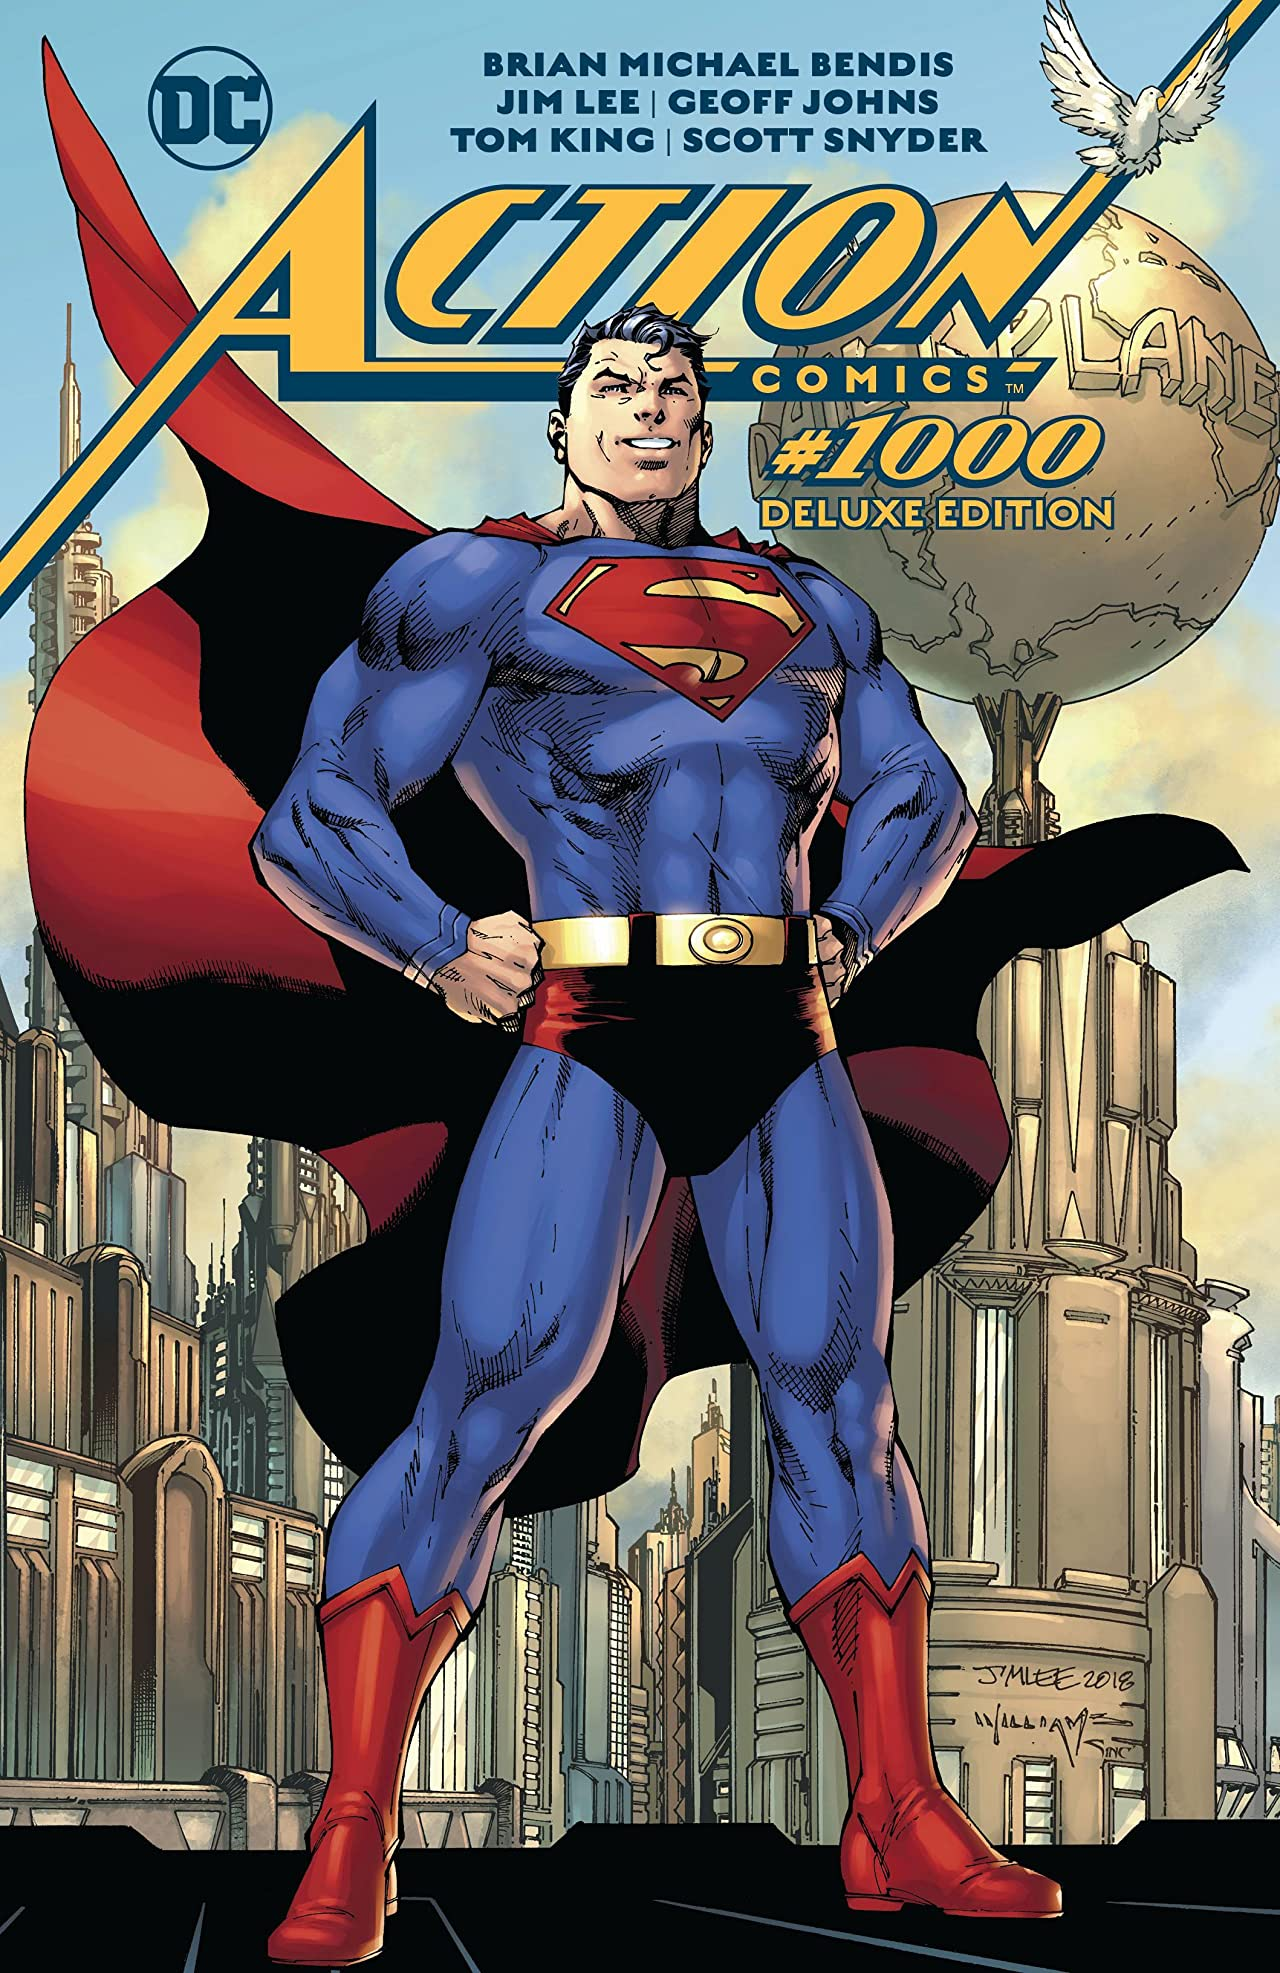 Action Comics Vol 1 1000: Deluxe Edition